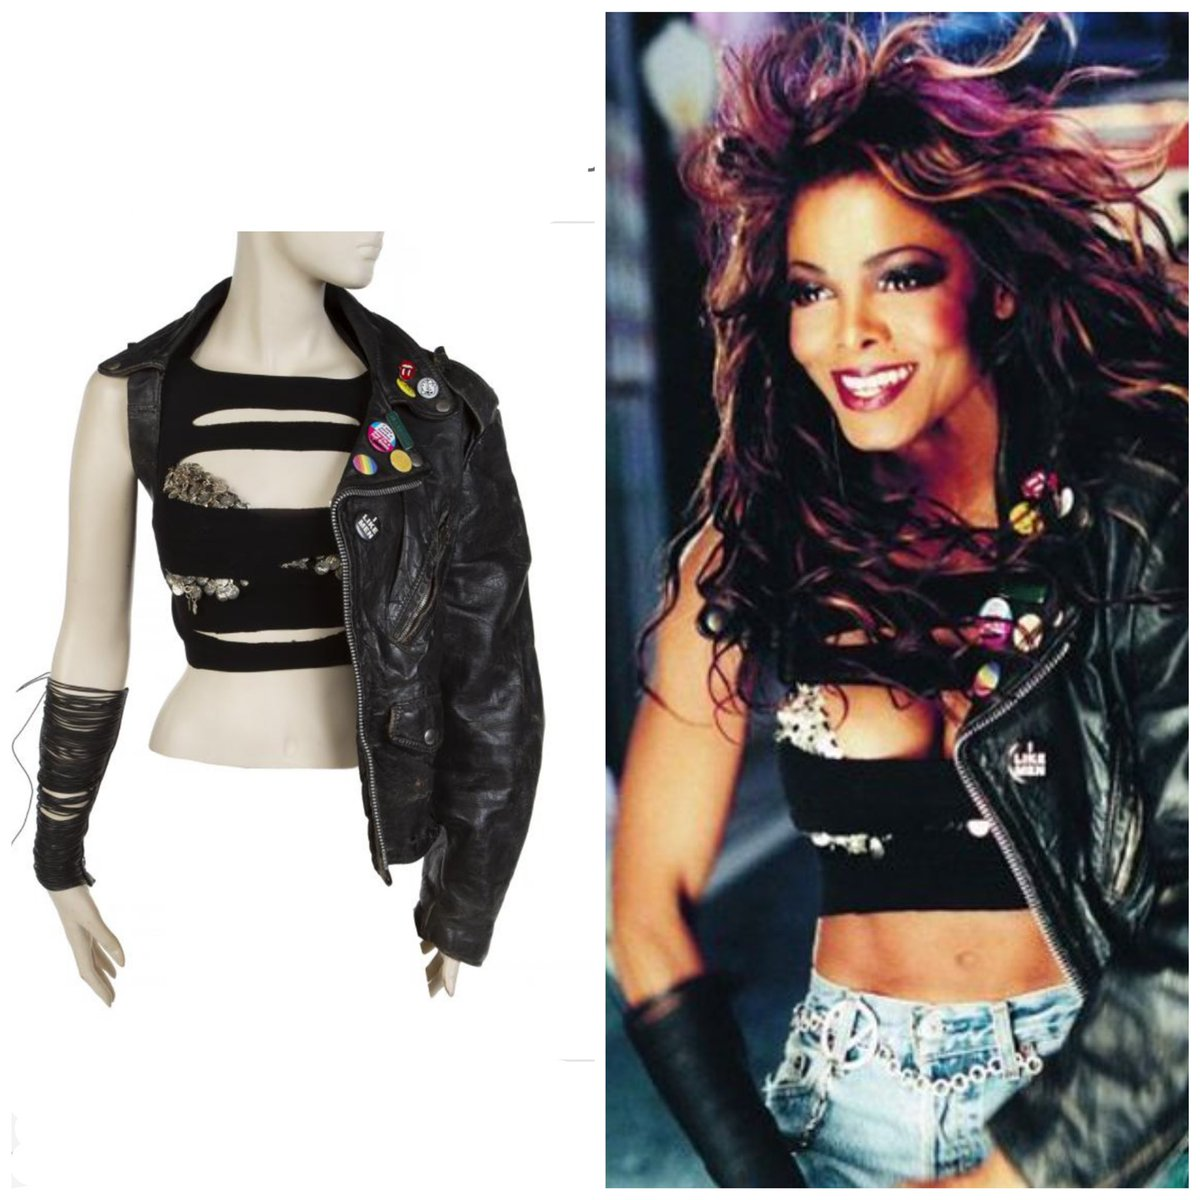 janet-jackson-all-for-you-music-video-costume-sold-for-22400-julien-auction